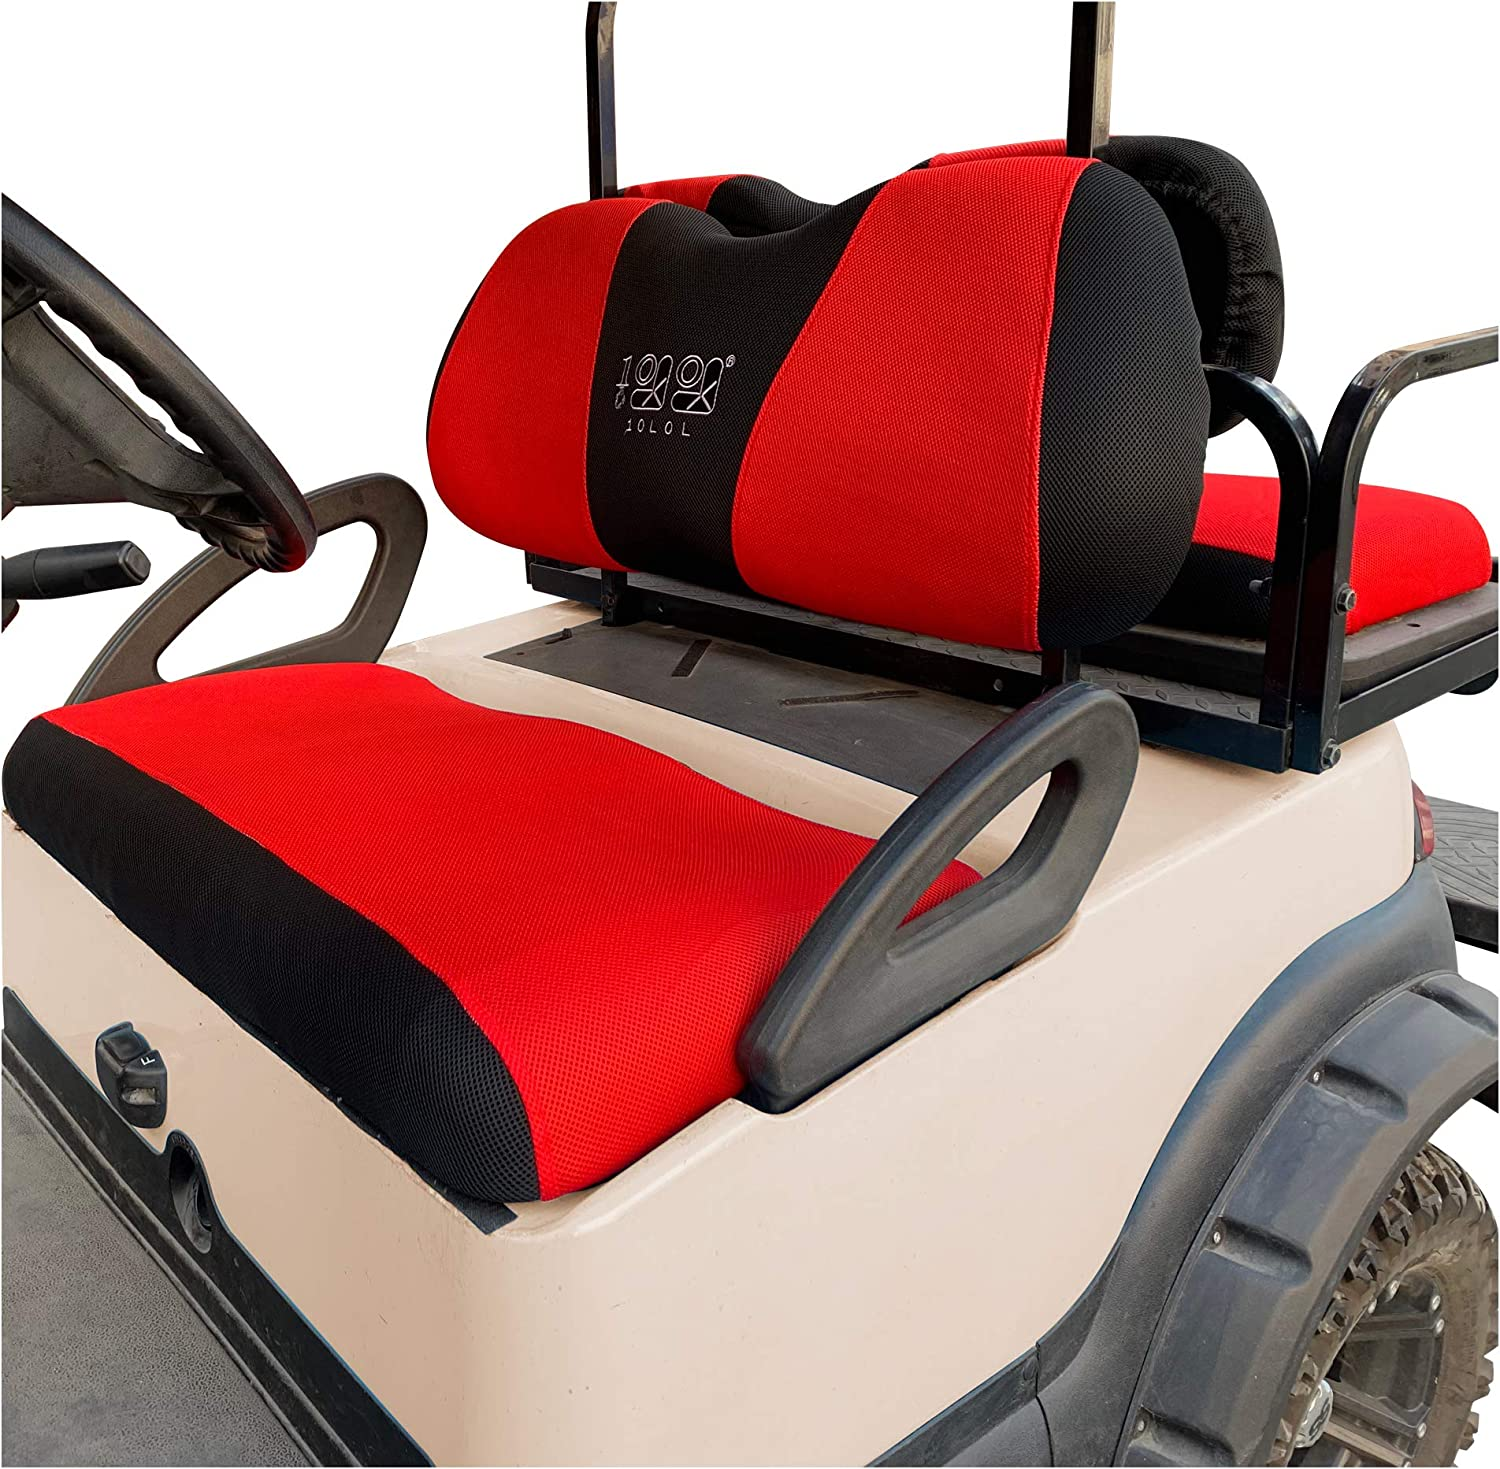 Club Car Accessories (Buying Guide 2021) - Seat Covers